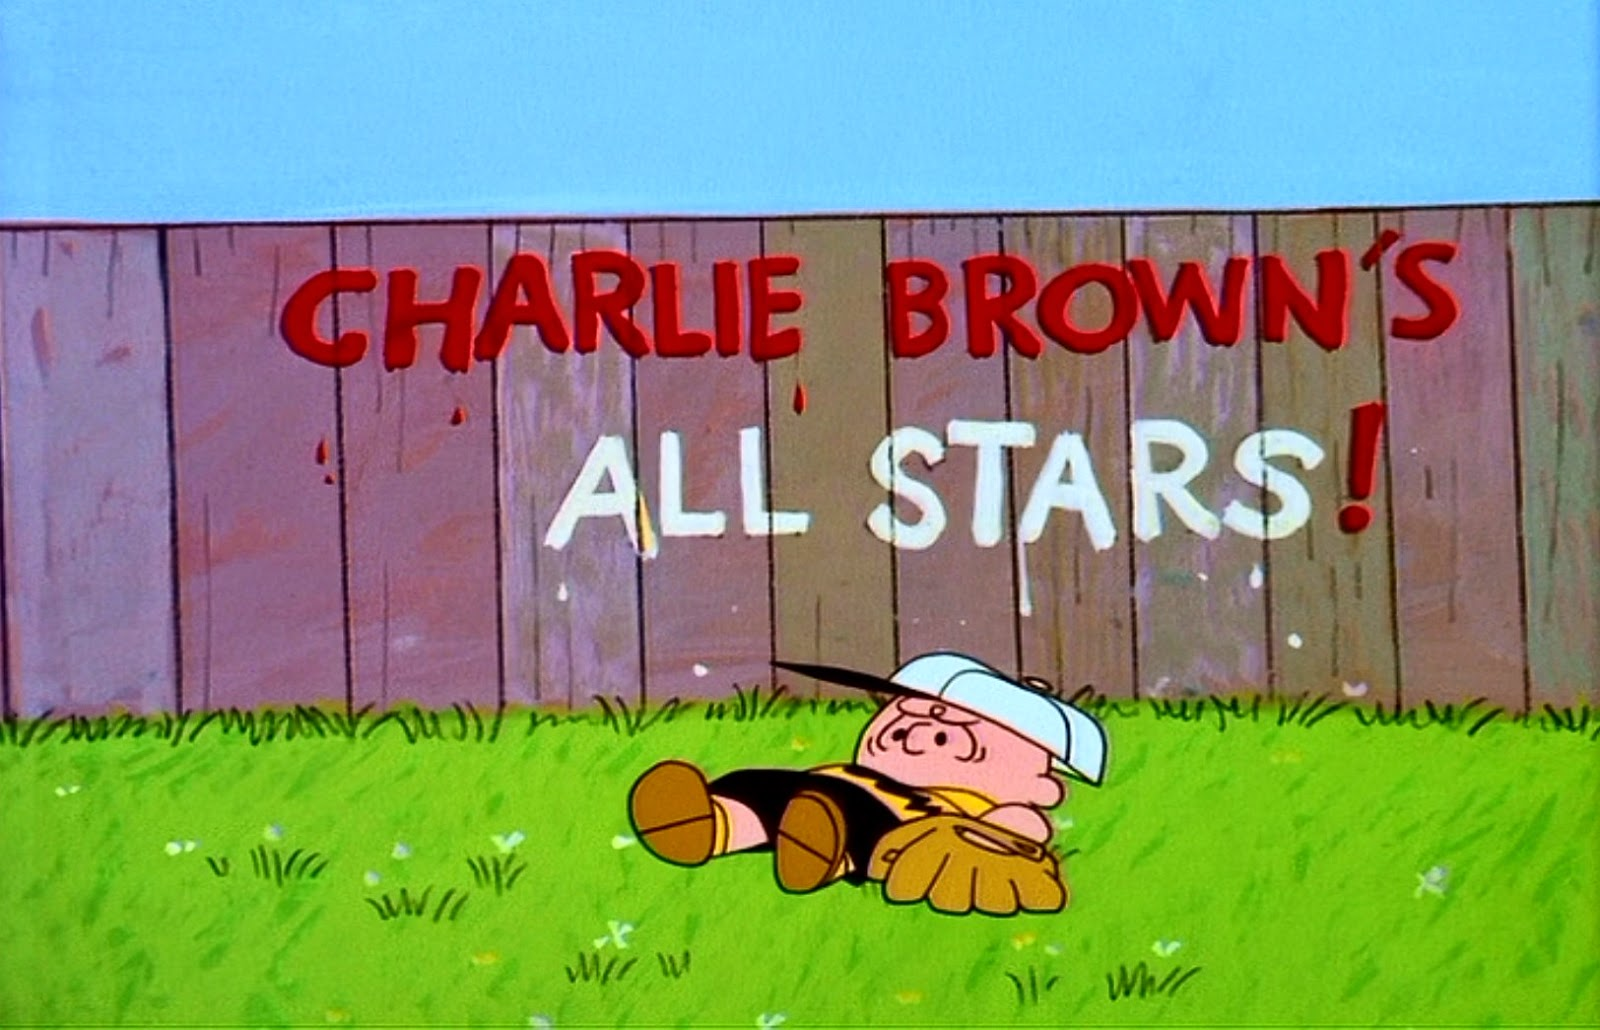 About Charlie Brown's. Tuck into some fine, fresh fare at your local Charlie Brown's Steakhouse.